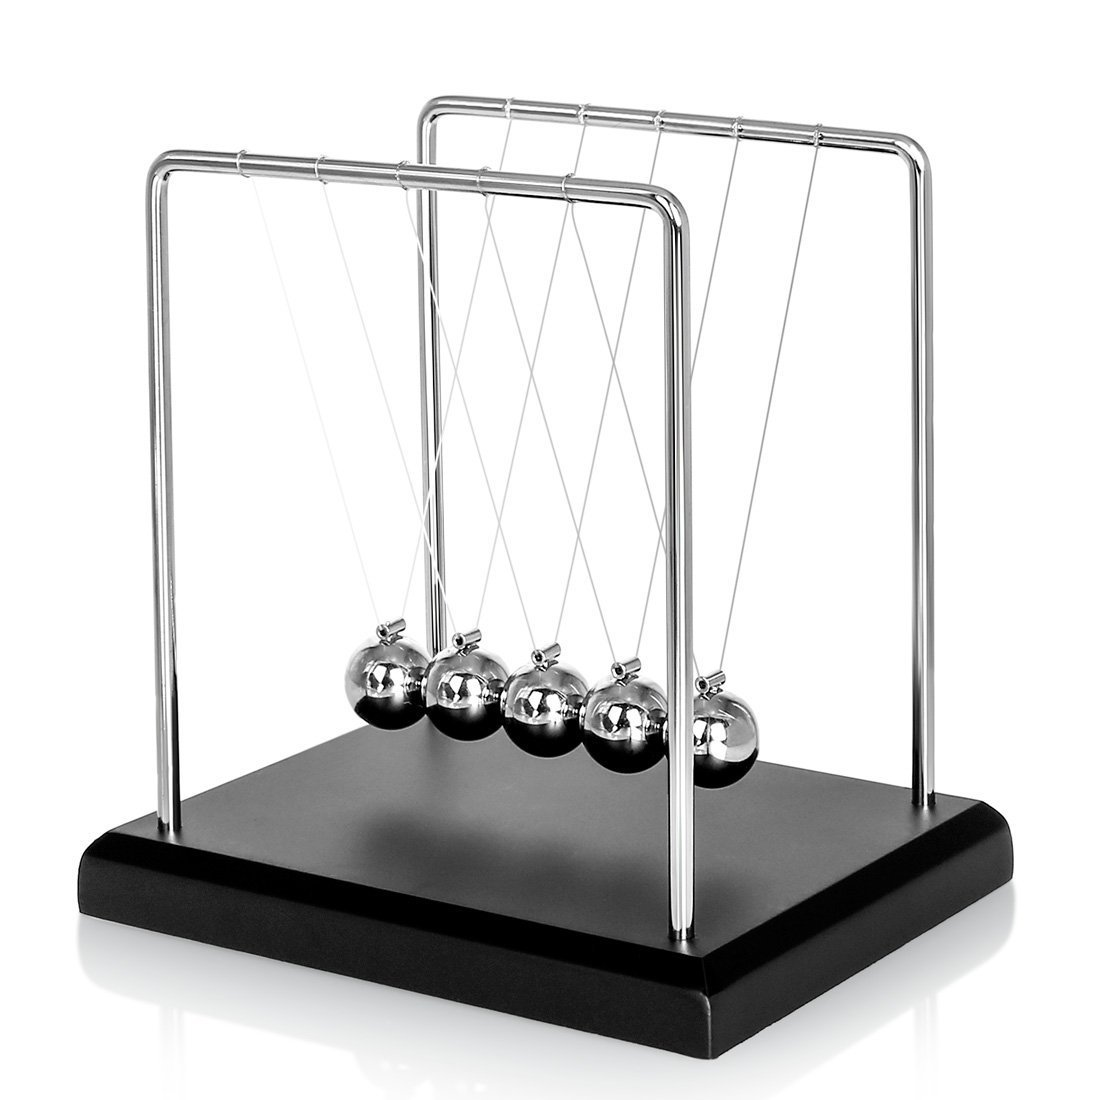 Zinnor Newton's Cradle,Newton's Cradle Balance Balls Metal Balance Ball Black Wooden Base Accompany Your Child's Grown-Up | Decoration Living Room Drawing Room Office